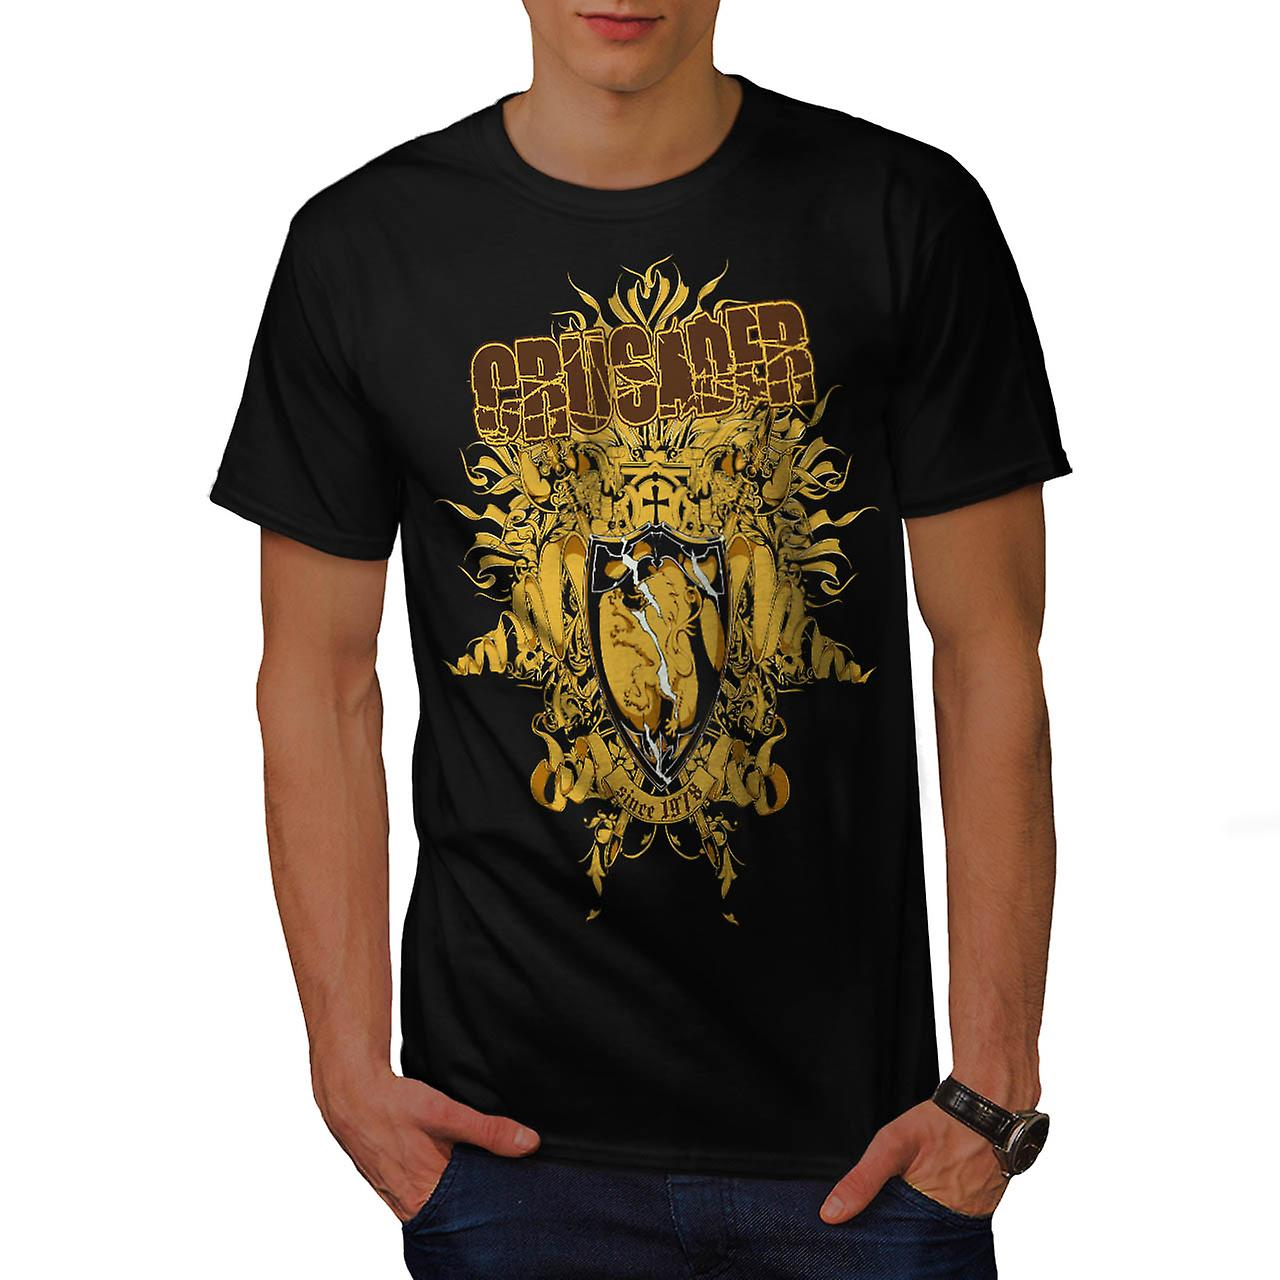 Cavaliere crociato Hero Warriors uomini t-shirt nero | Wellcoda